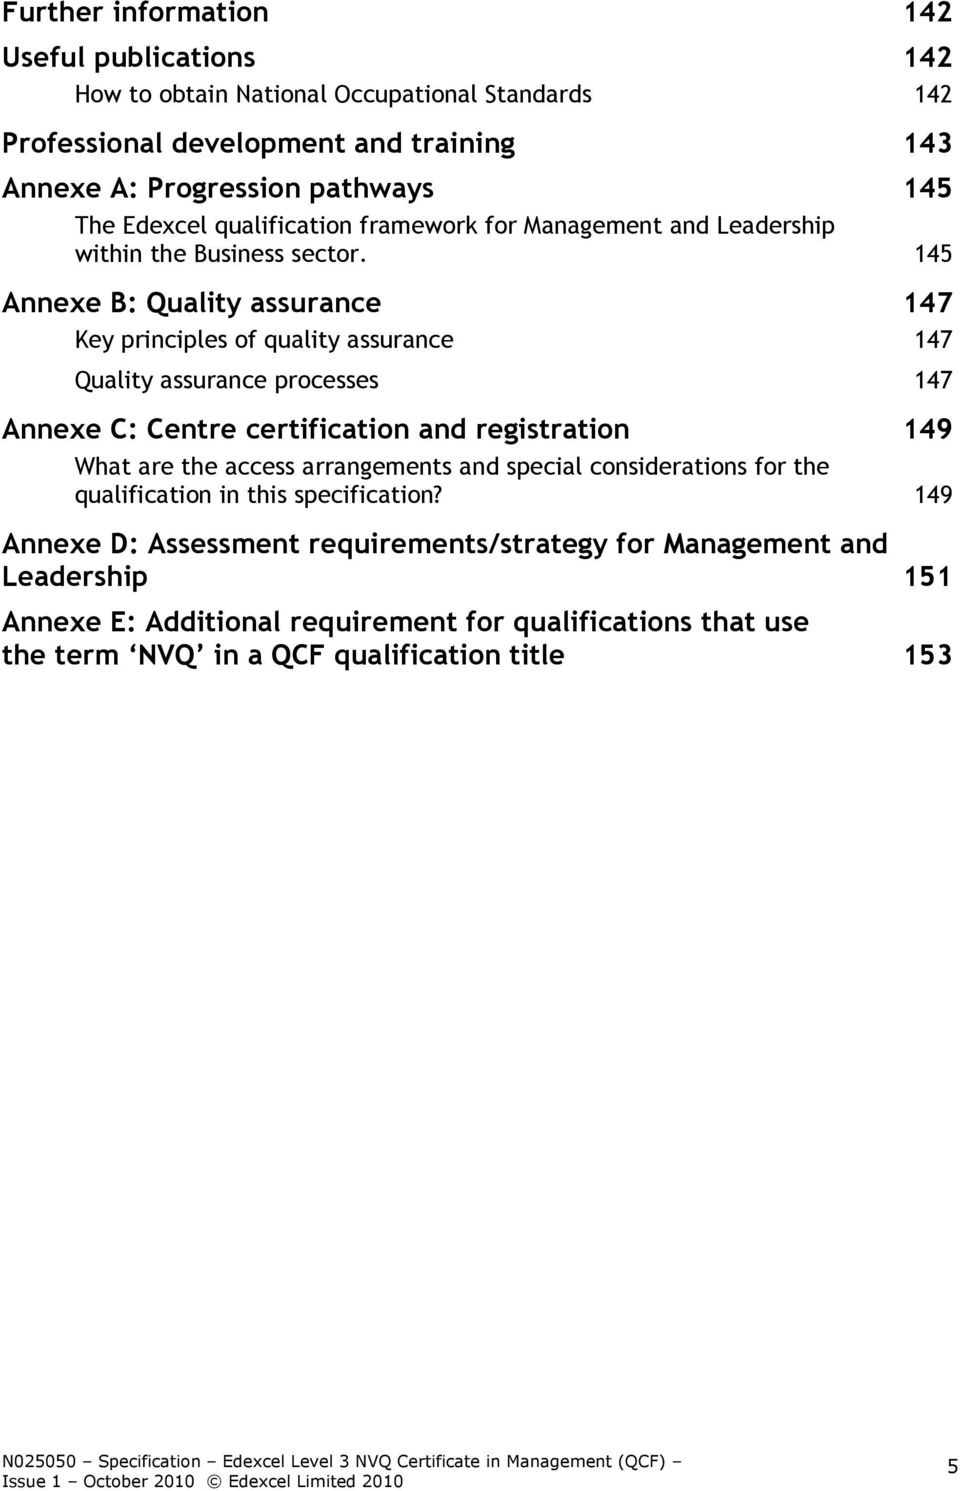 145 Annexe B: Quality assurance 147 Key principles of quality assurance 147 Quality assurance processes 147 Annexe C: Centre certification and registration 149 What are the access